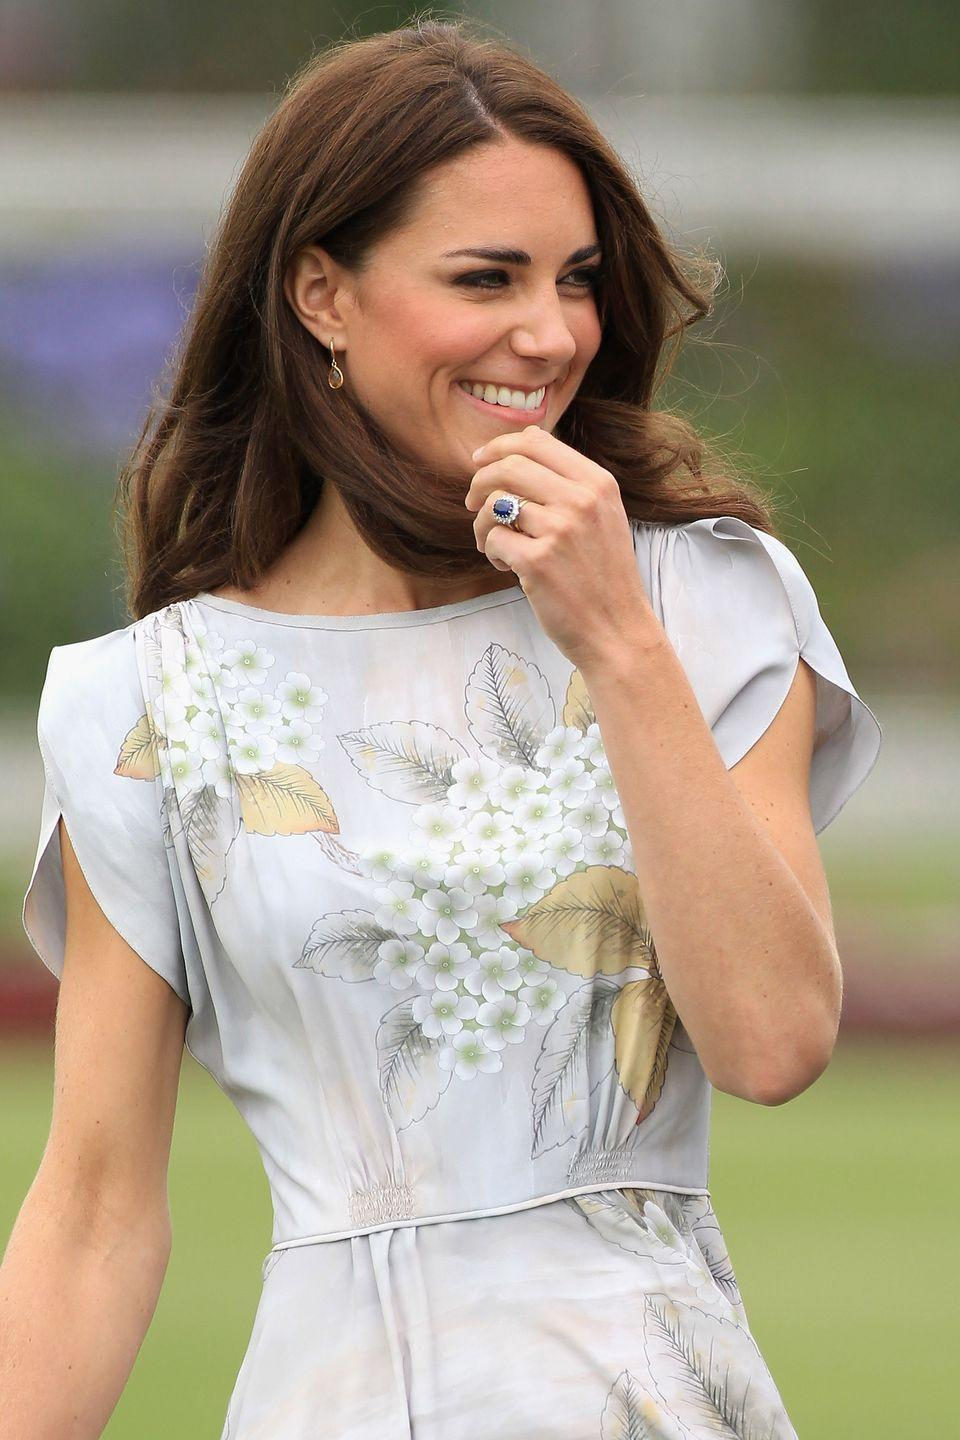 <p>Prince William proposed to Kate Middleton in 2010 with the same engagement ring Prince Charles gave to the late Princess Diana, who apparently chose the ring herself. The centerpiece is a 12-carat oval sapphire with 14 solitaire diamonds set in a white gold band.</p>